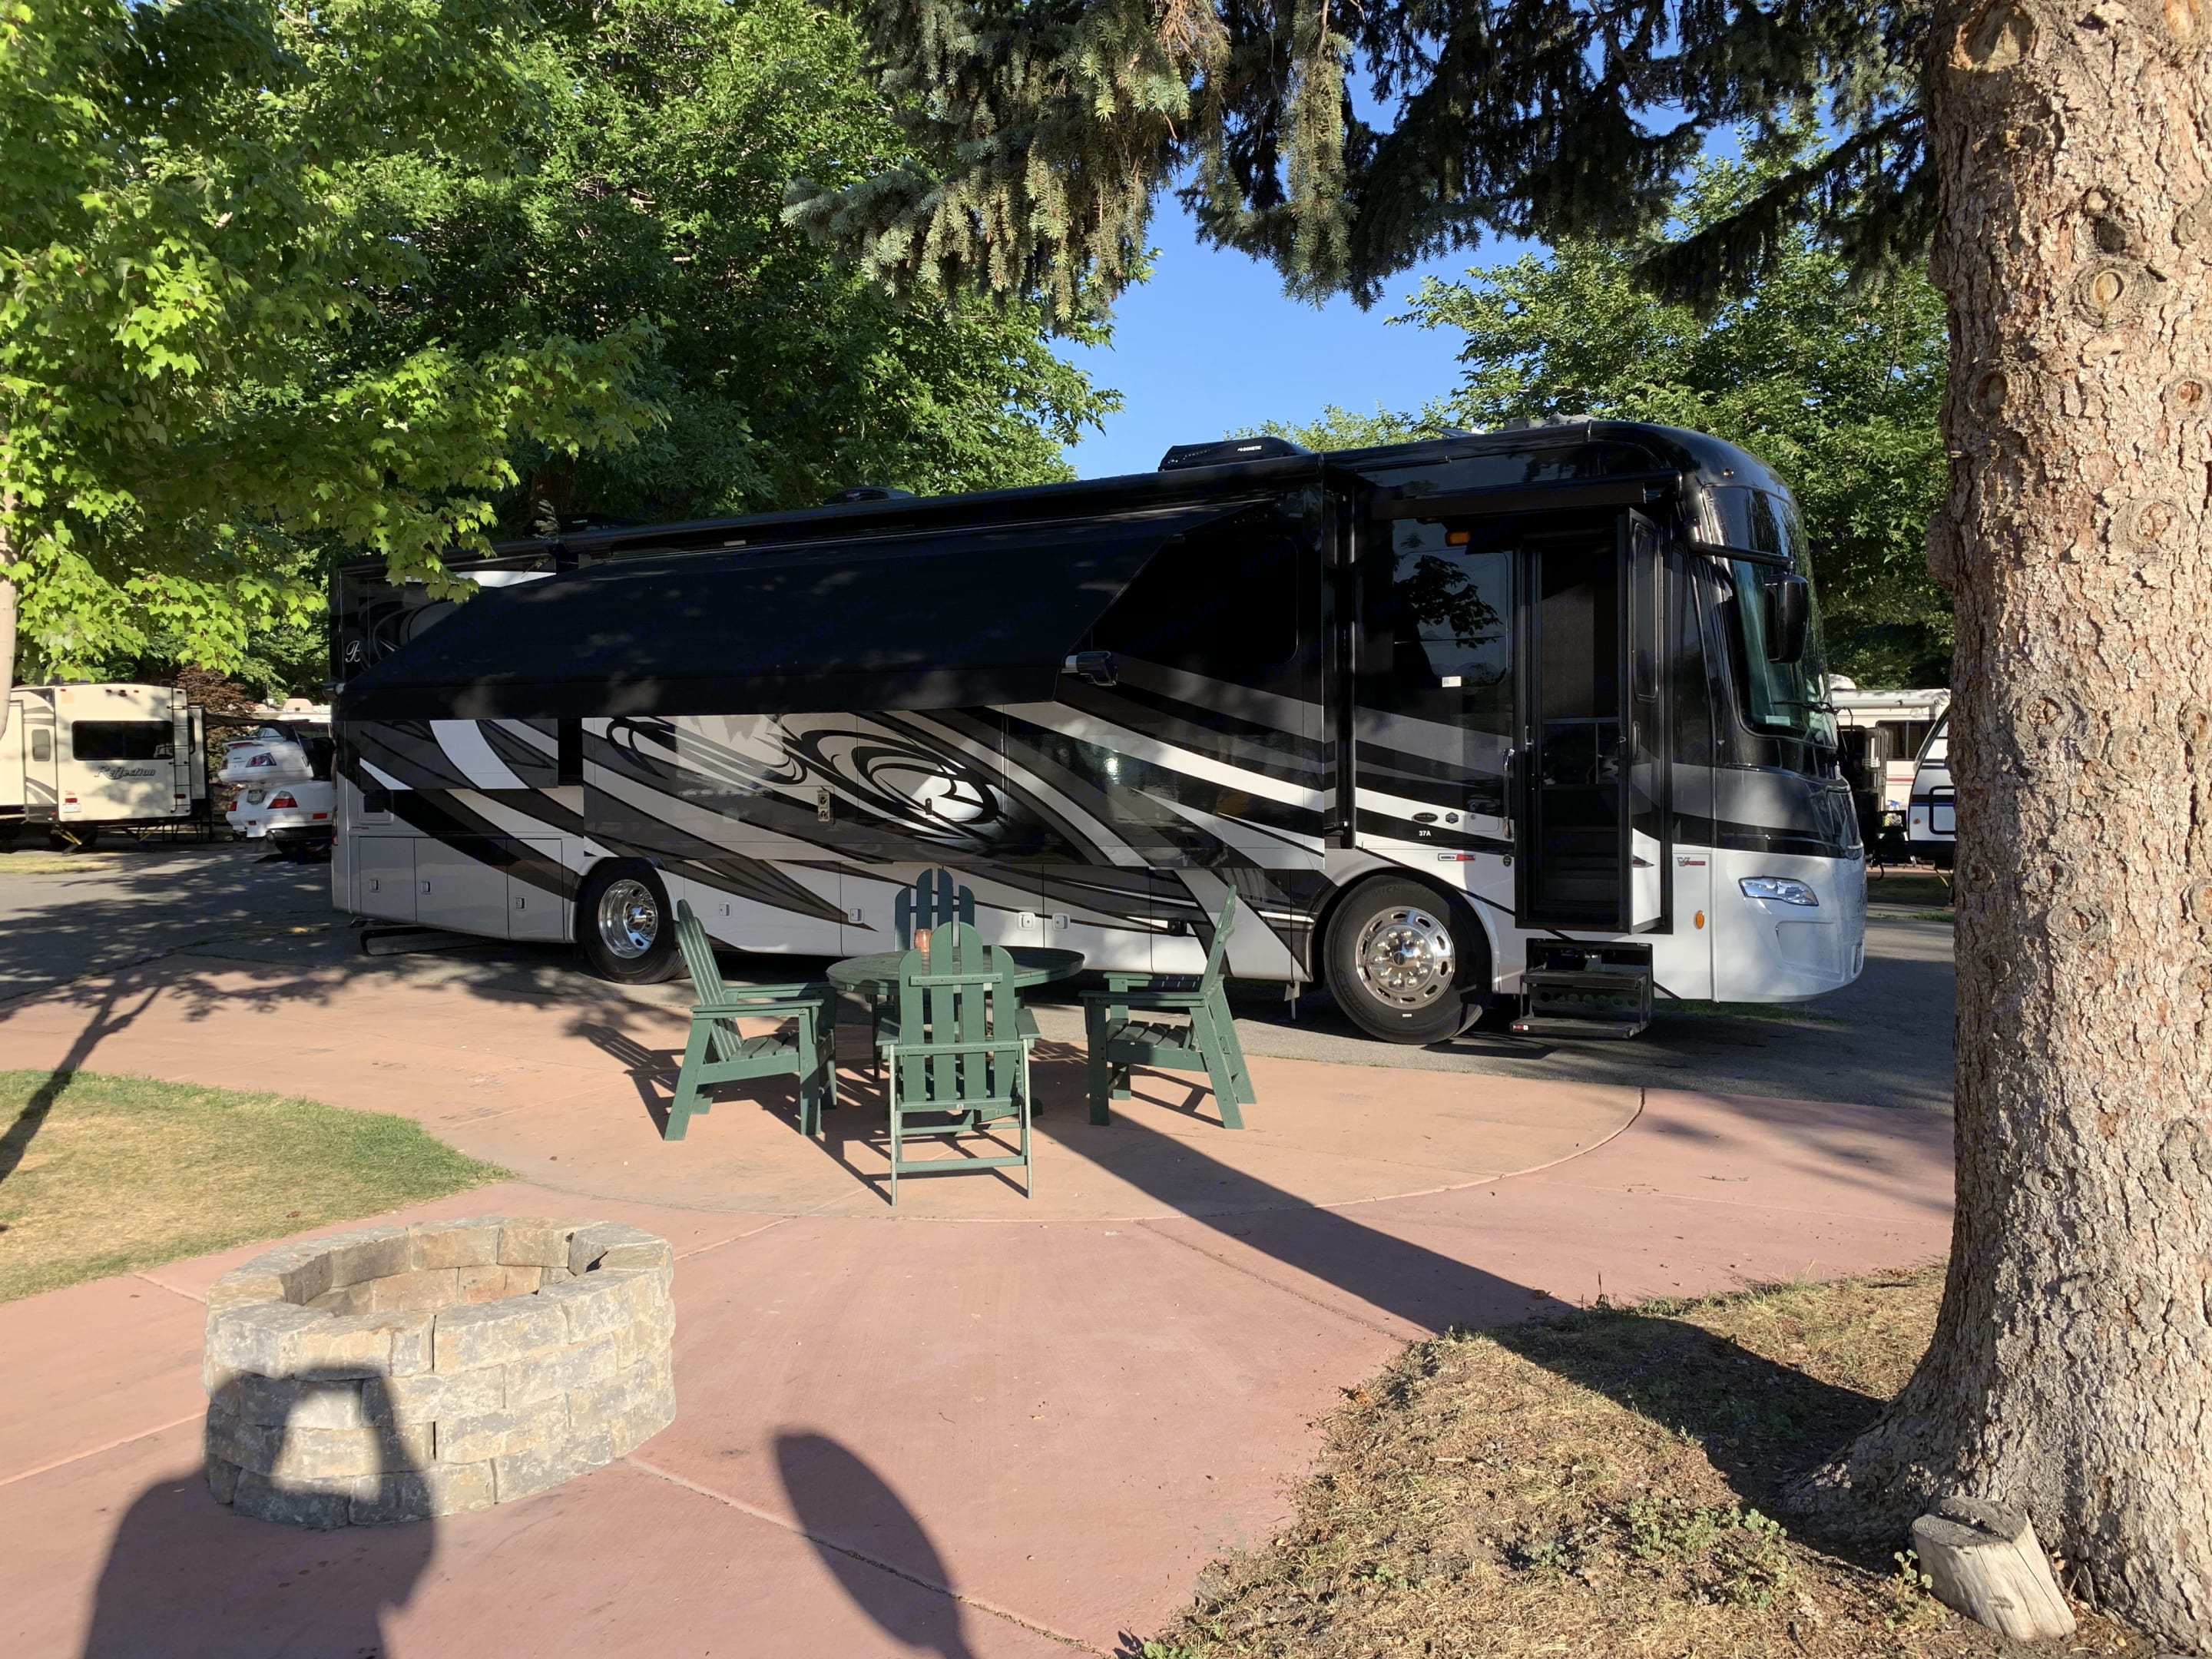 KOA Campground camping. Luxury Forest River Berkshire 2020